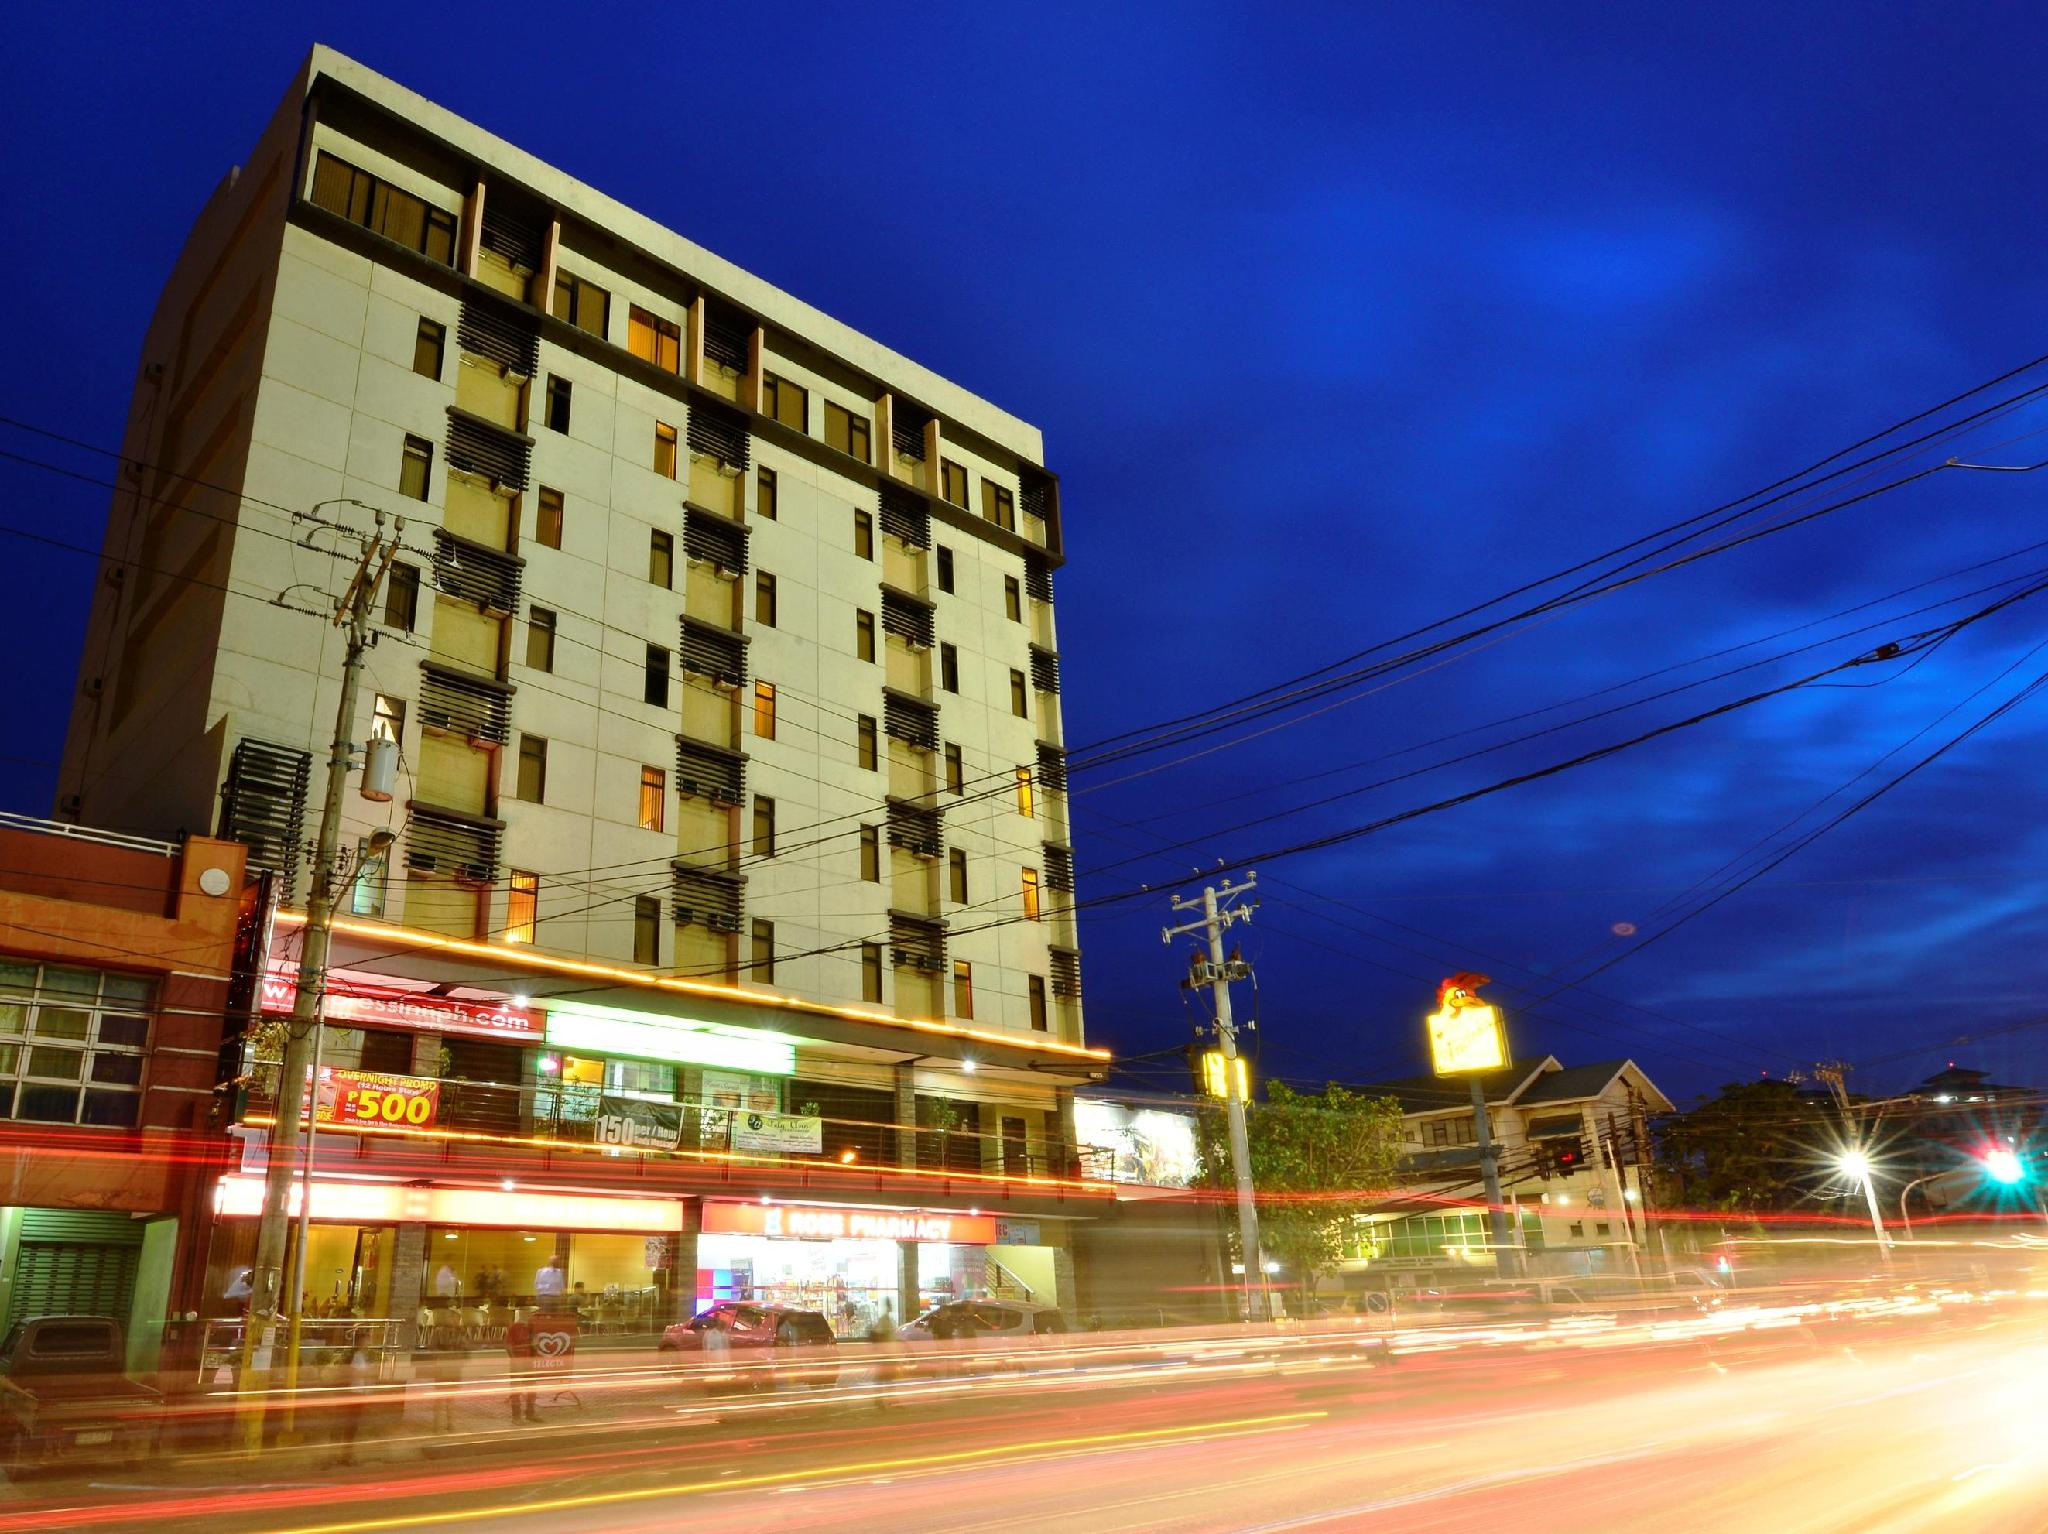 Express Inn - Cebu